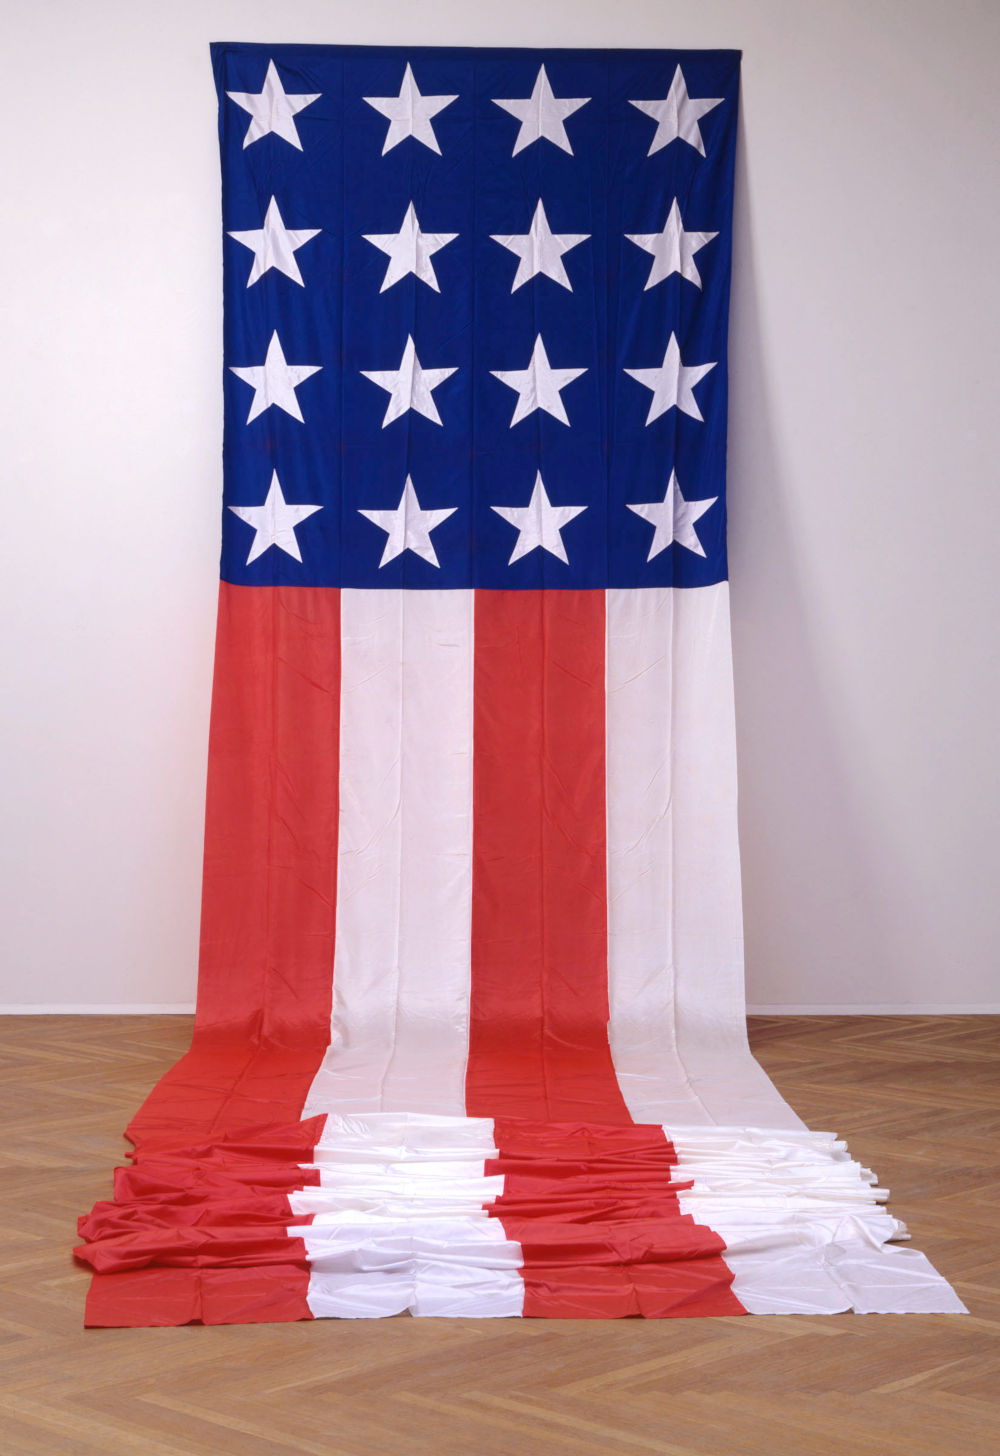 James Lee Byars, The American Flag, 1974. Silk acetate 380 x 88 inches 965 x 223.5 cm